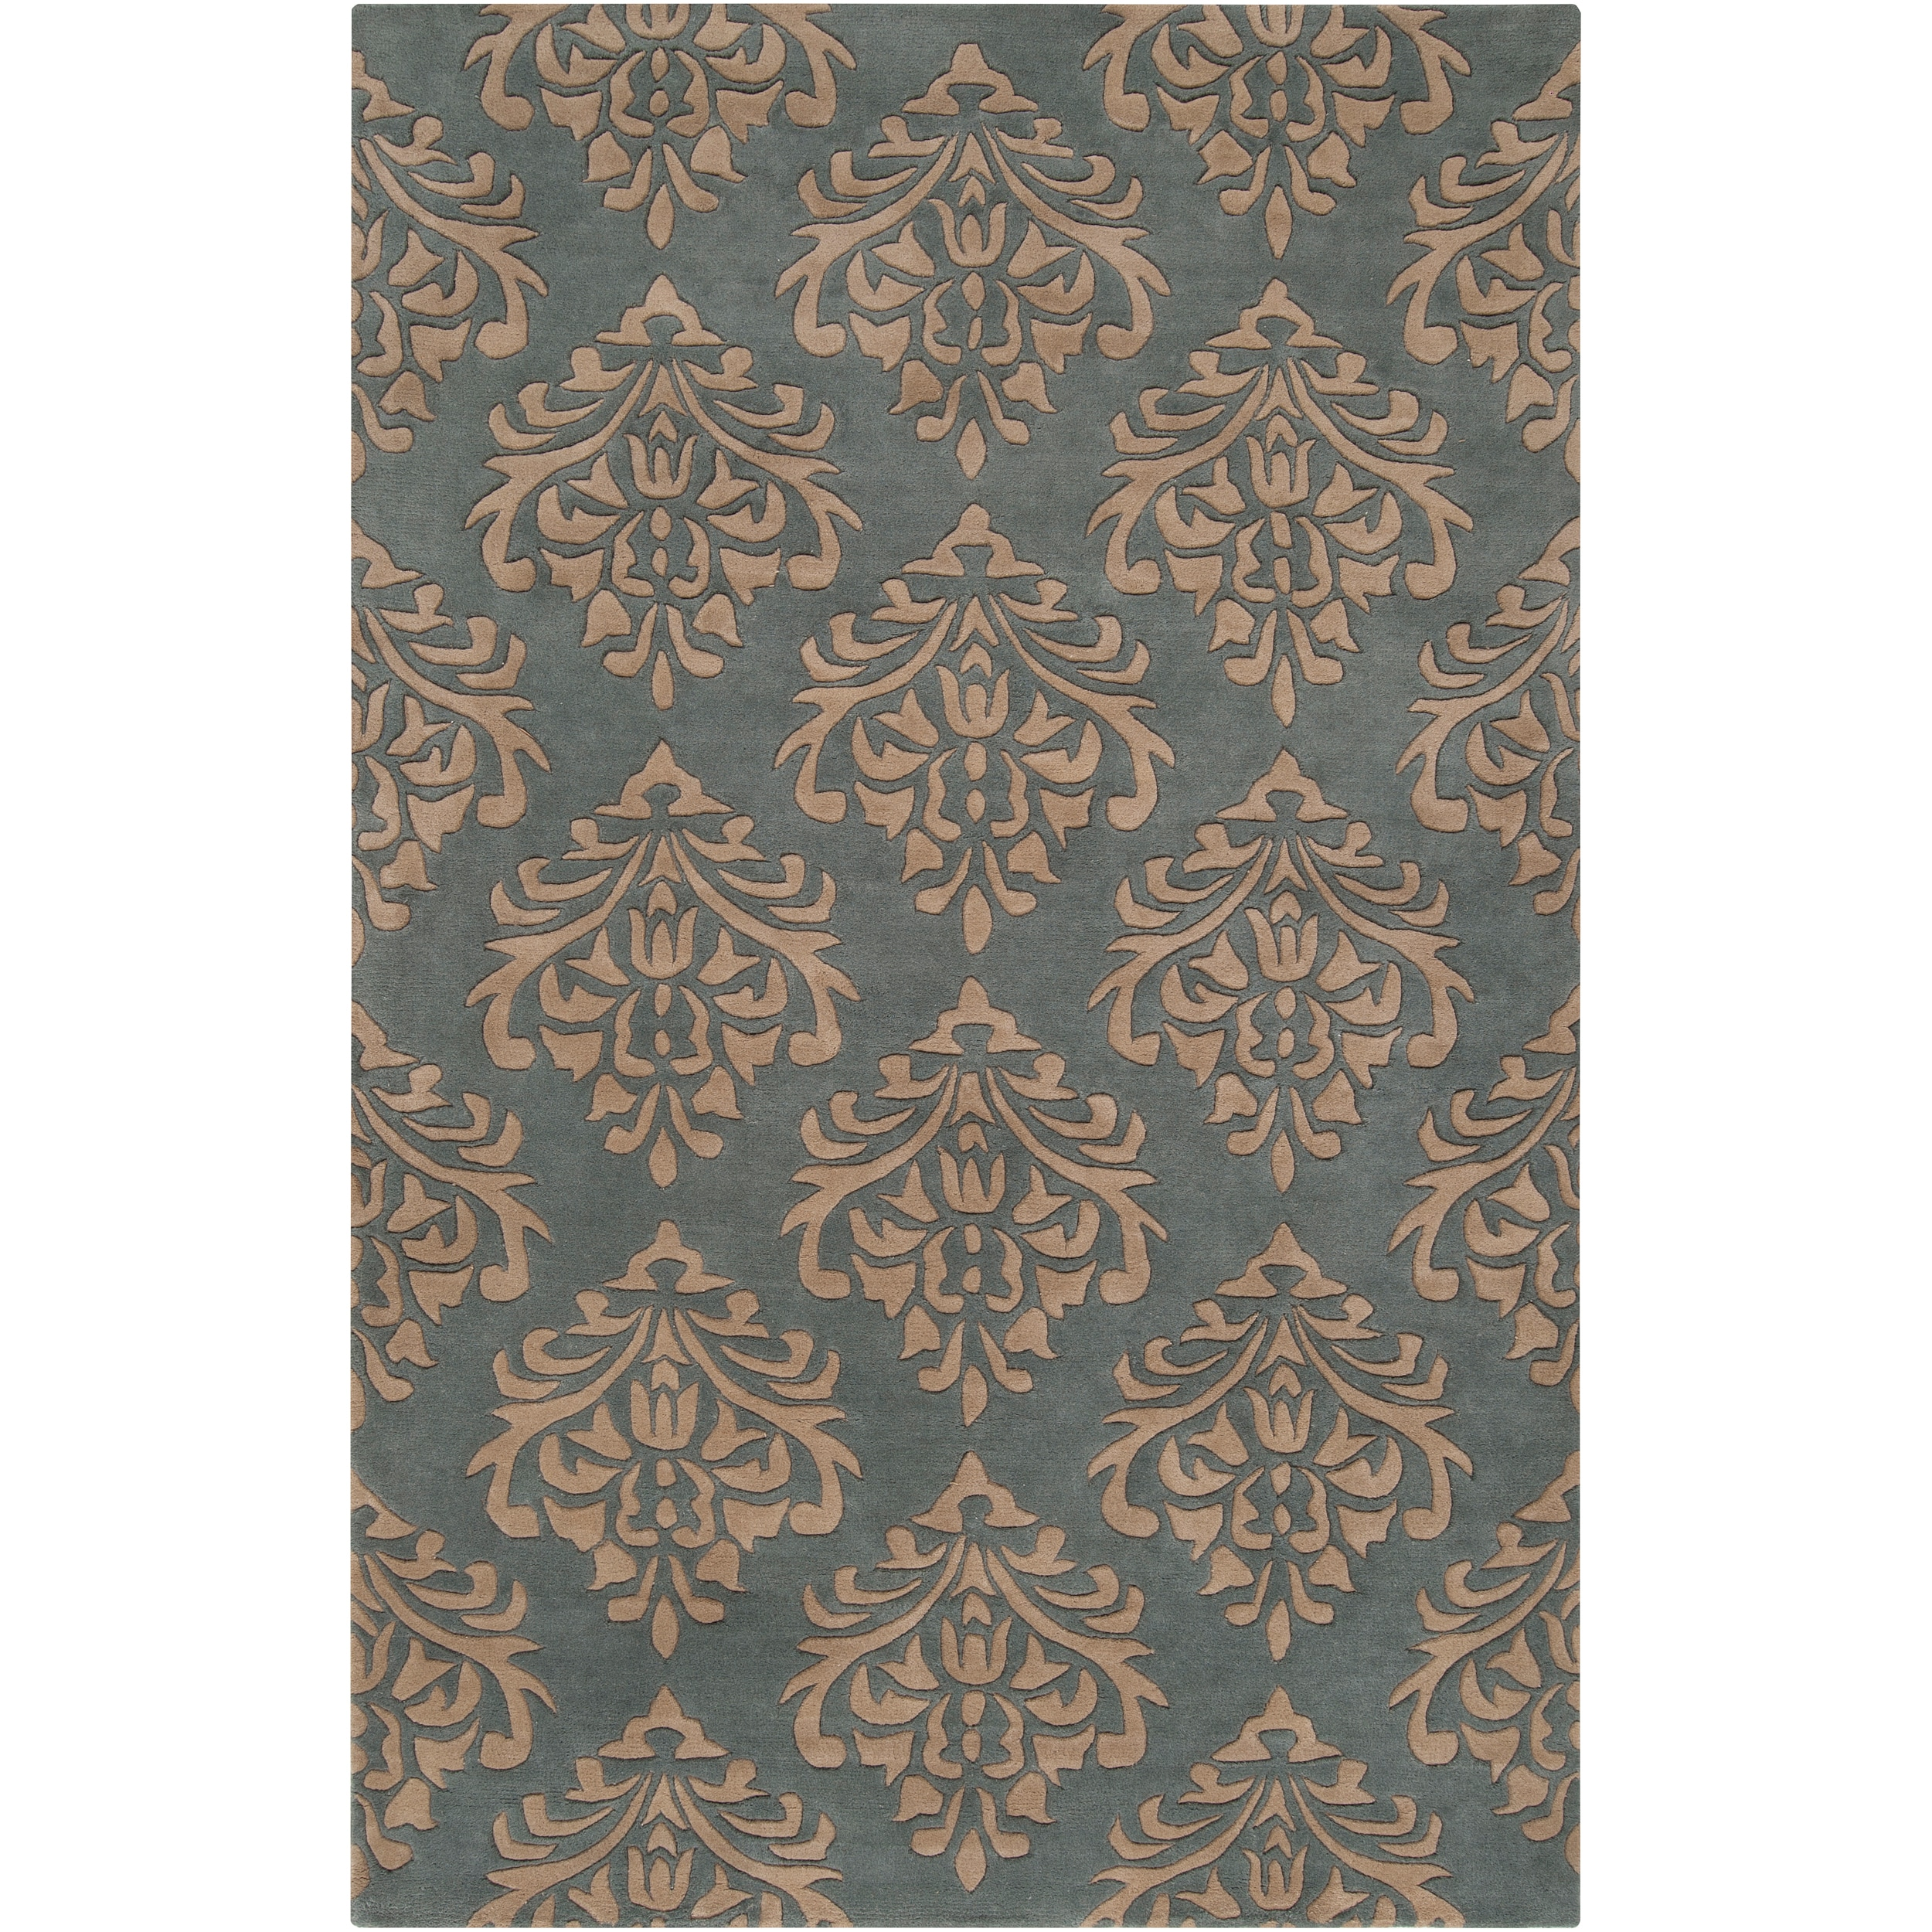 Hand-tufted Green New York Ave Damask Pattern Wool Rug (5' x 8')